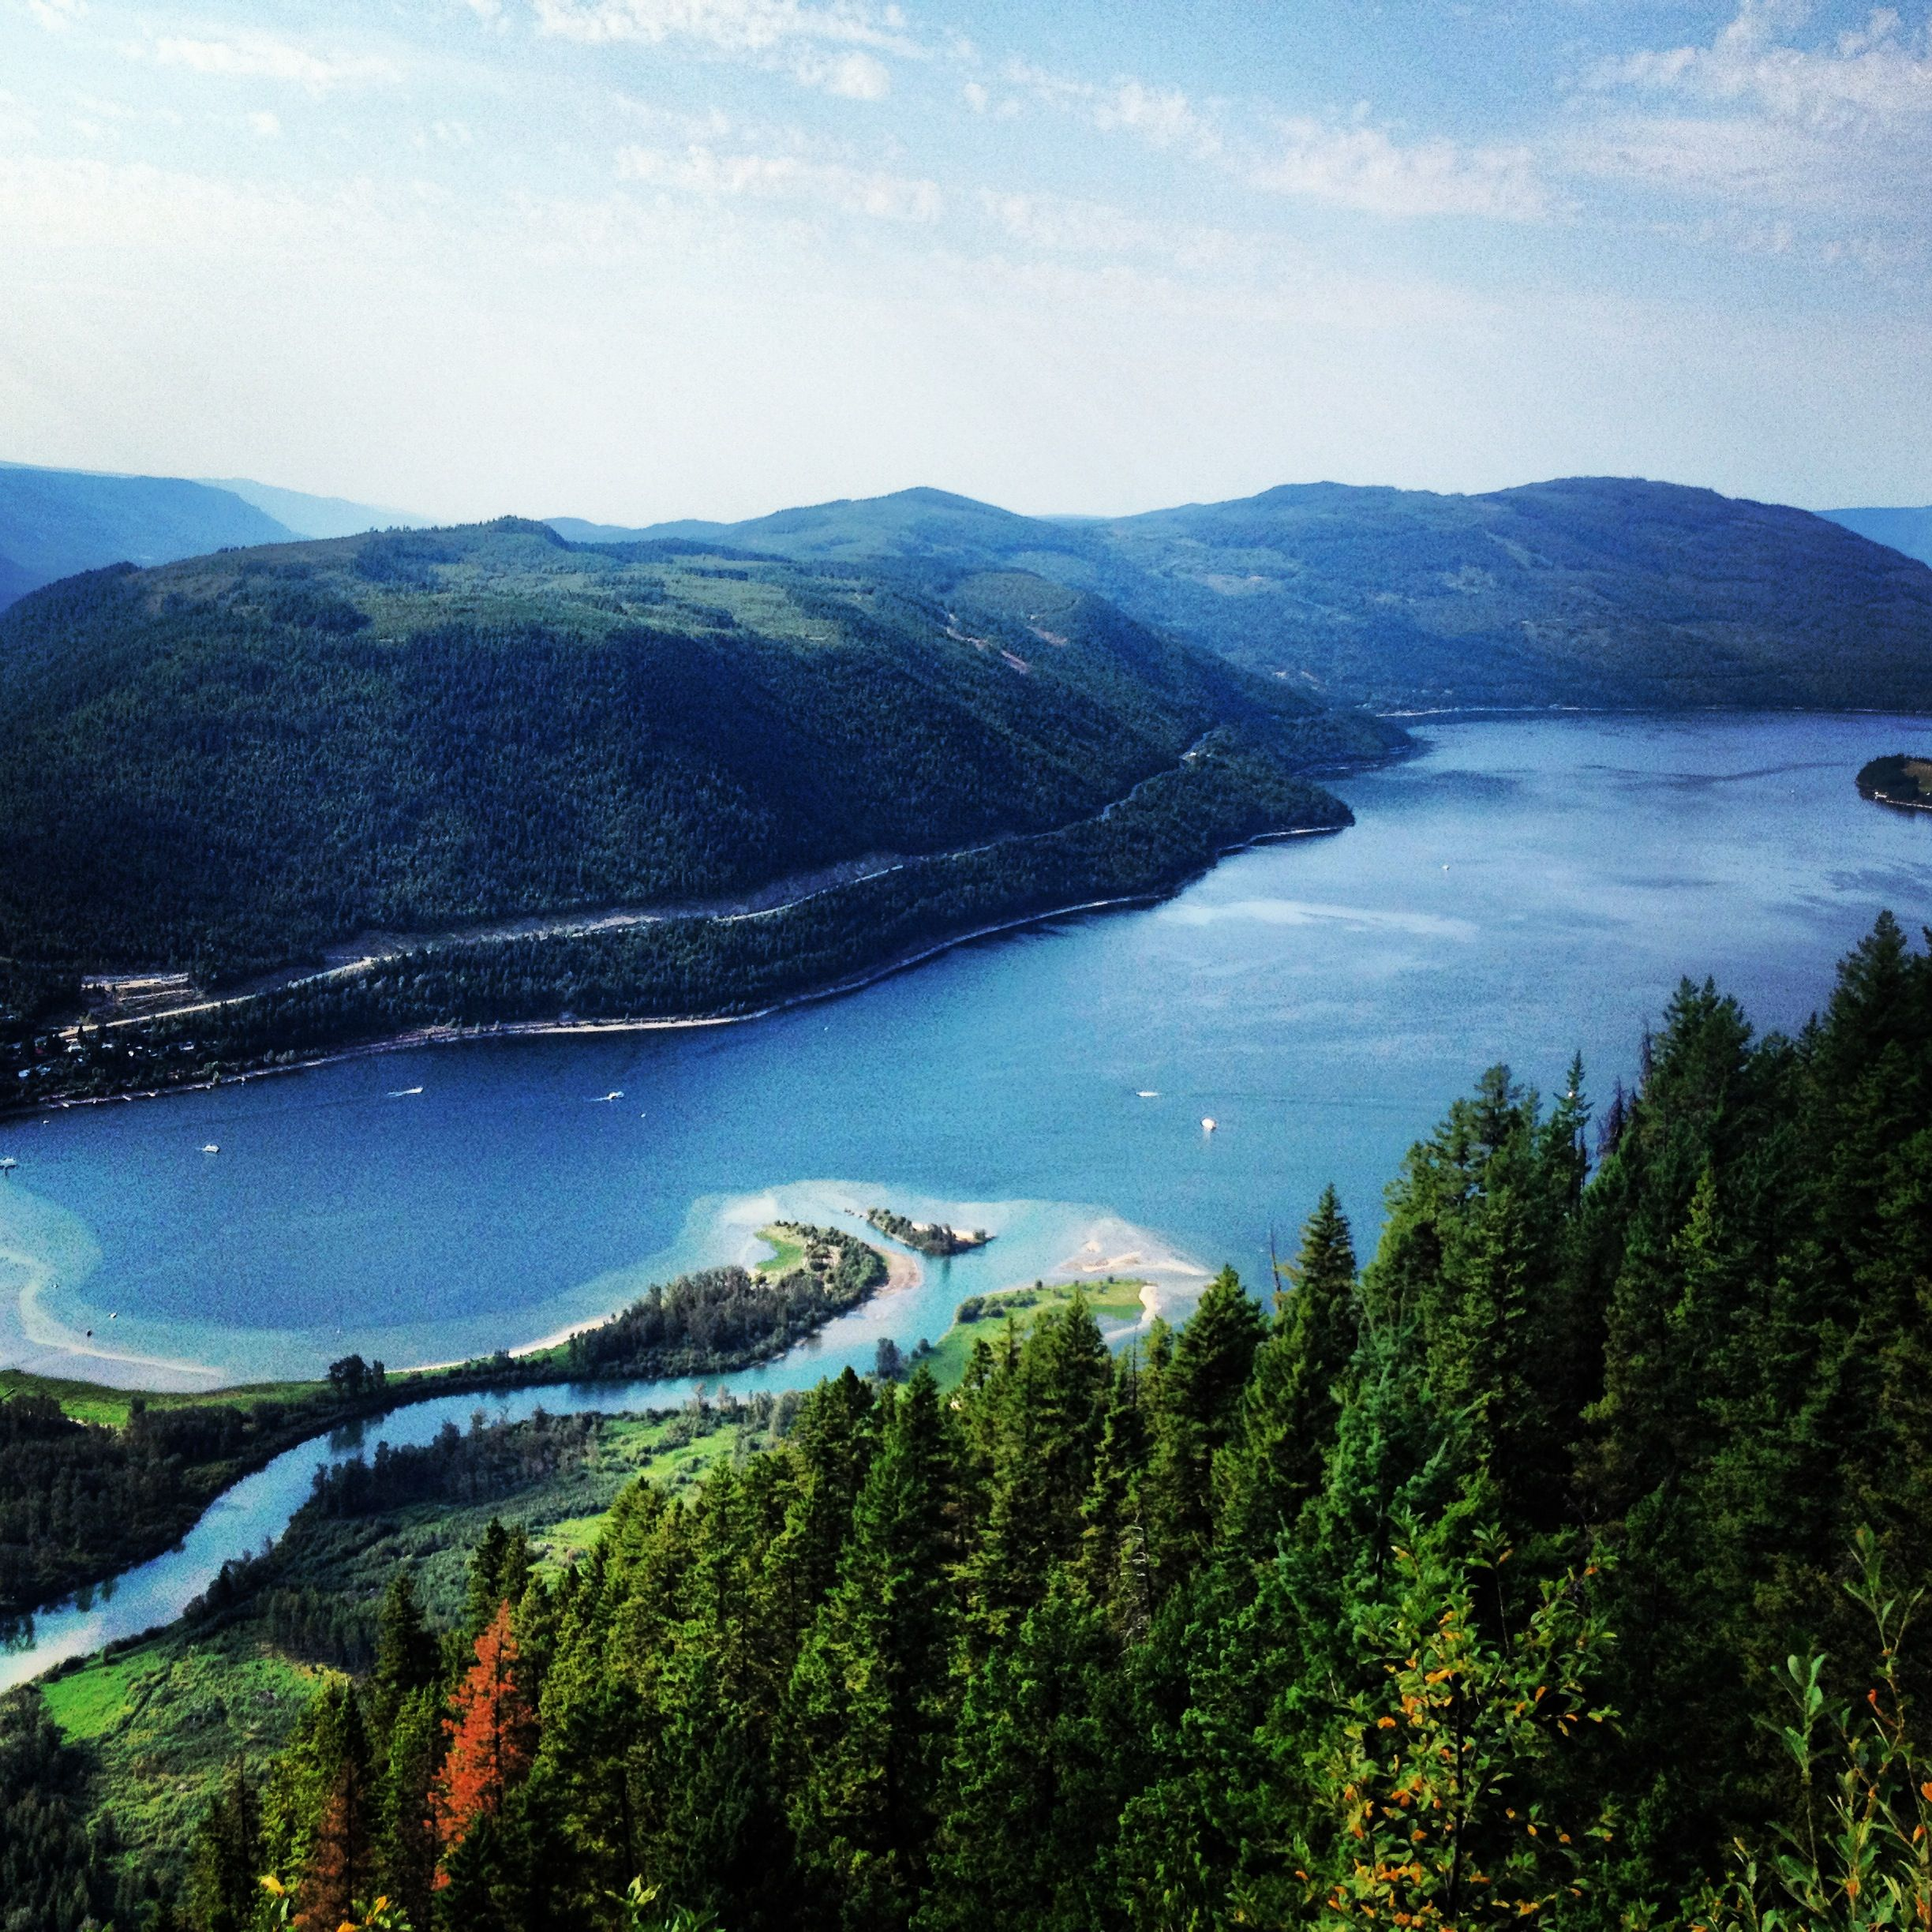 Places To Visit In Vancouver During Summer: Mara Lake, British Columbia, Canada